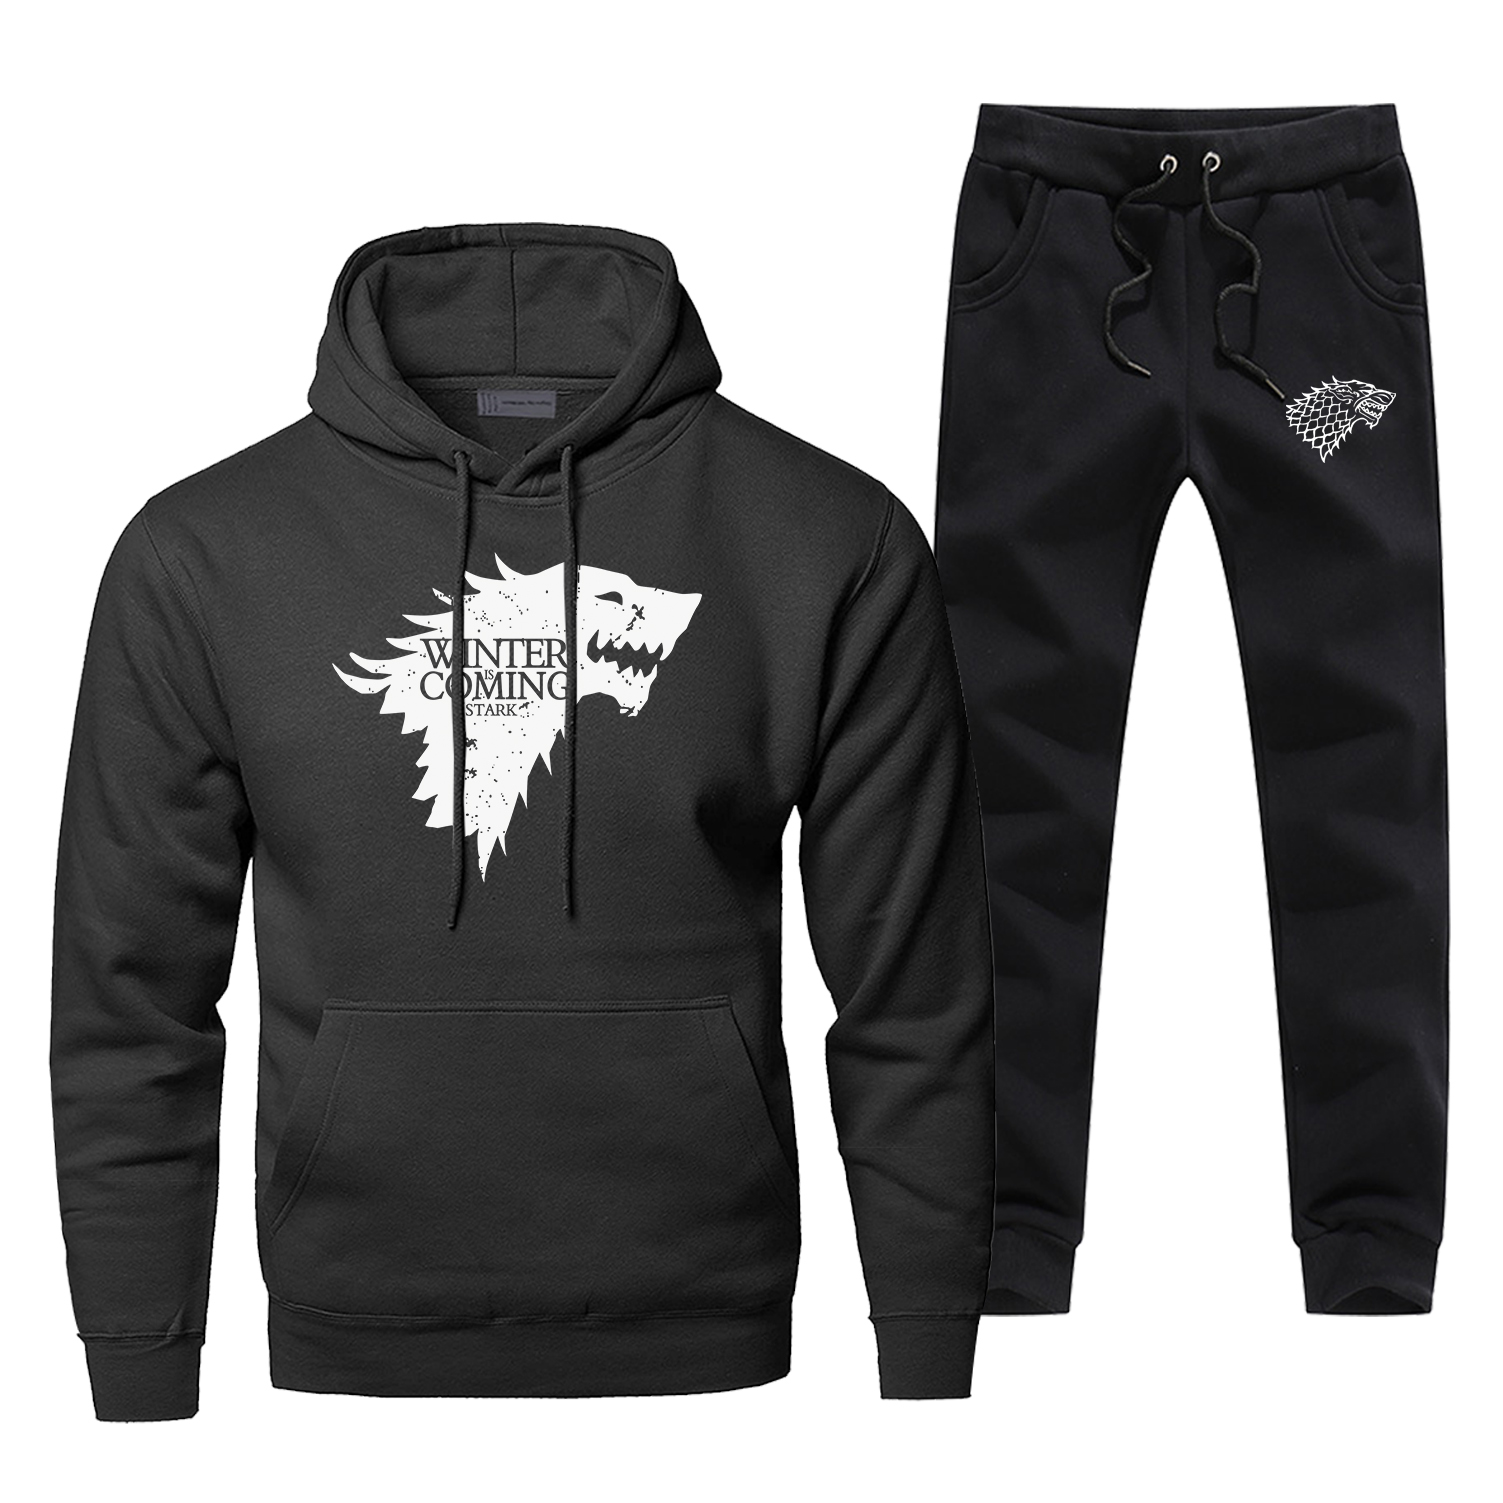 Game Of Thrones Wolf Hoodies Pants Suit Men Sets Winter Is Coming Sweatshirt Sweatpants Autumn A Song Of Ice And Fire Tracksuit